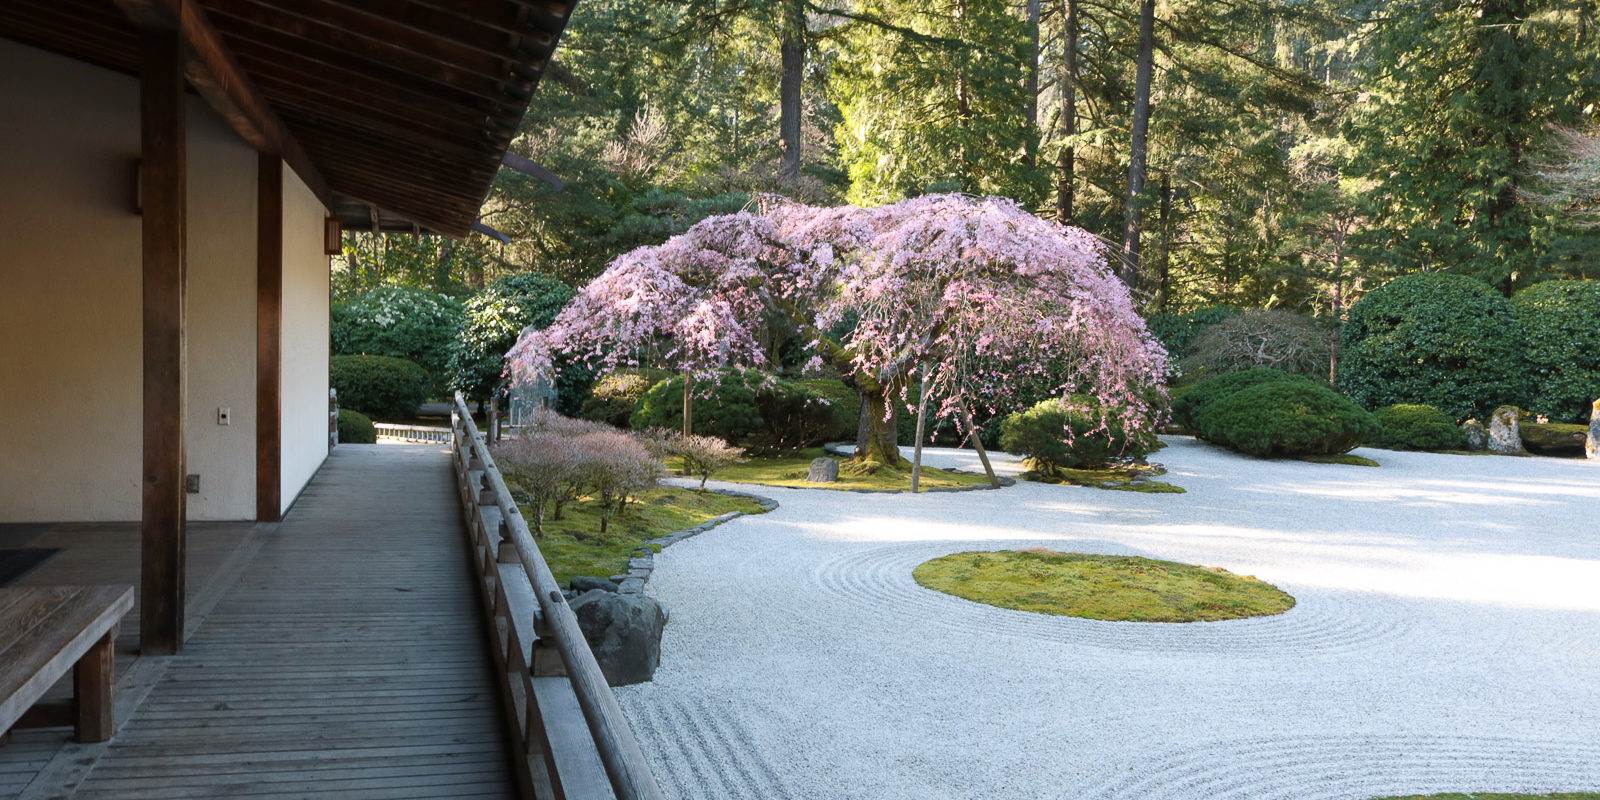 LR_Julia Taylor_Portland Japanese Garden_March 20, 2018_IMG_4303